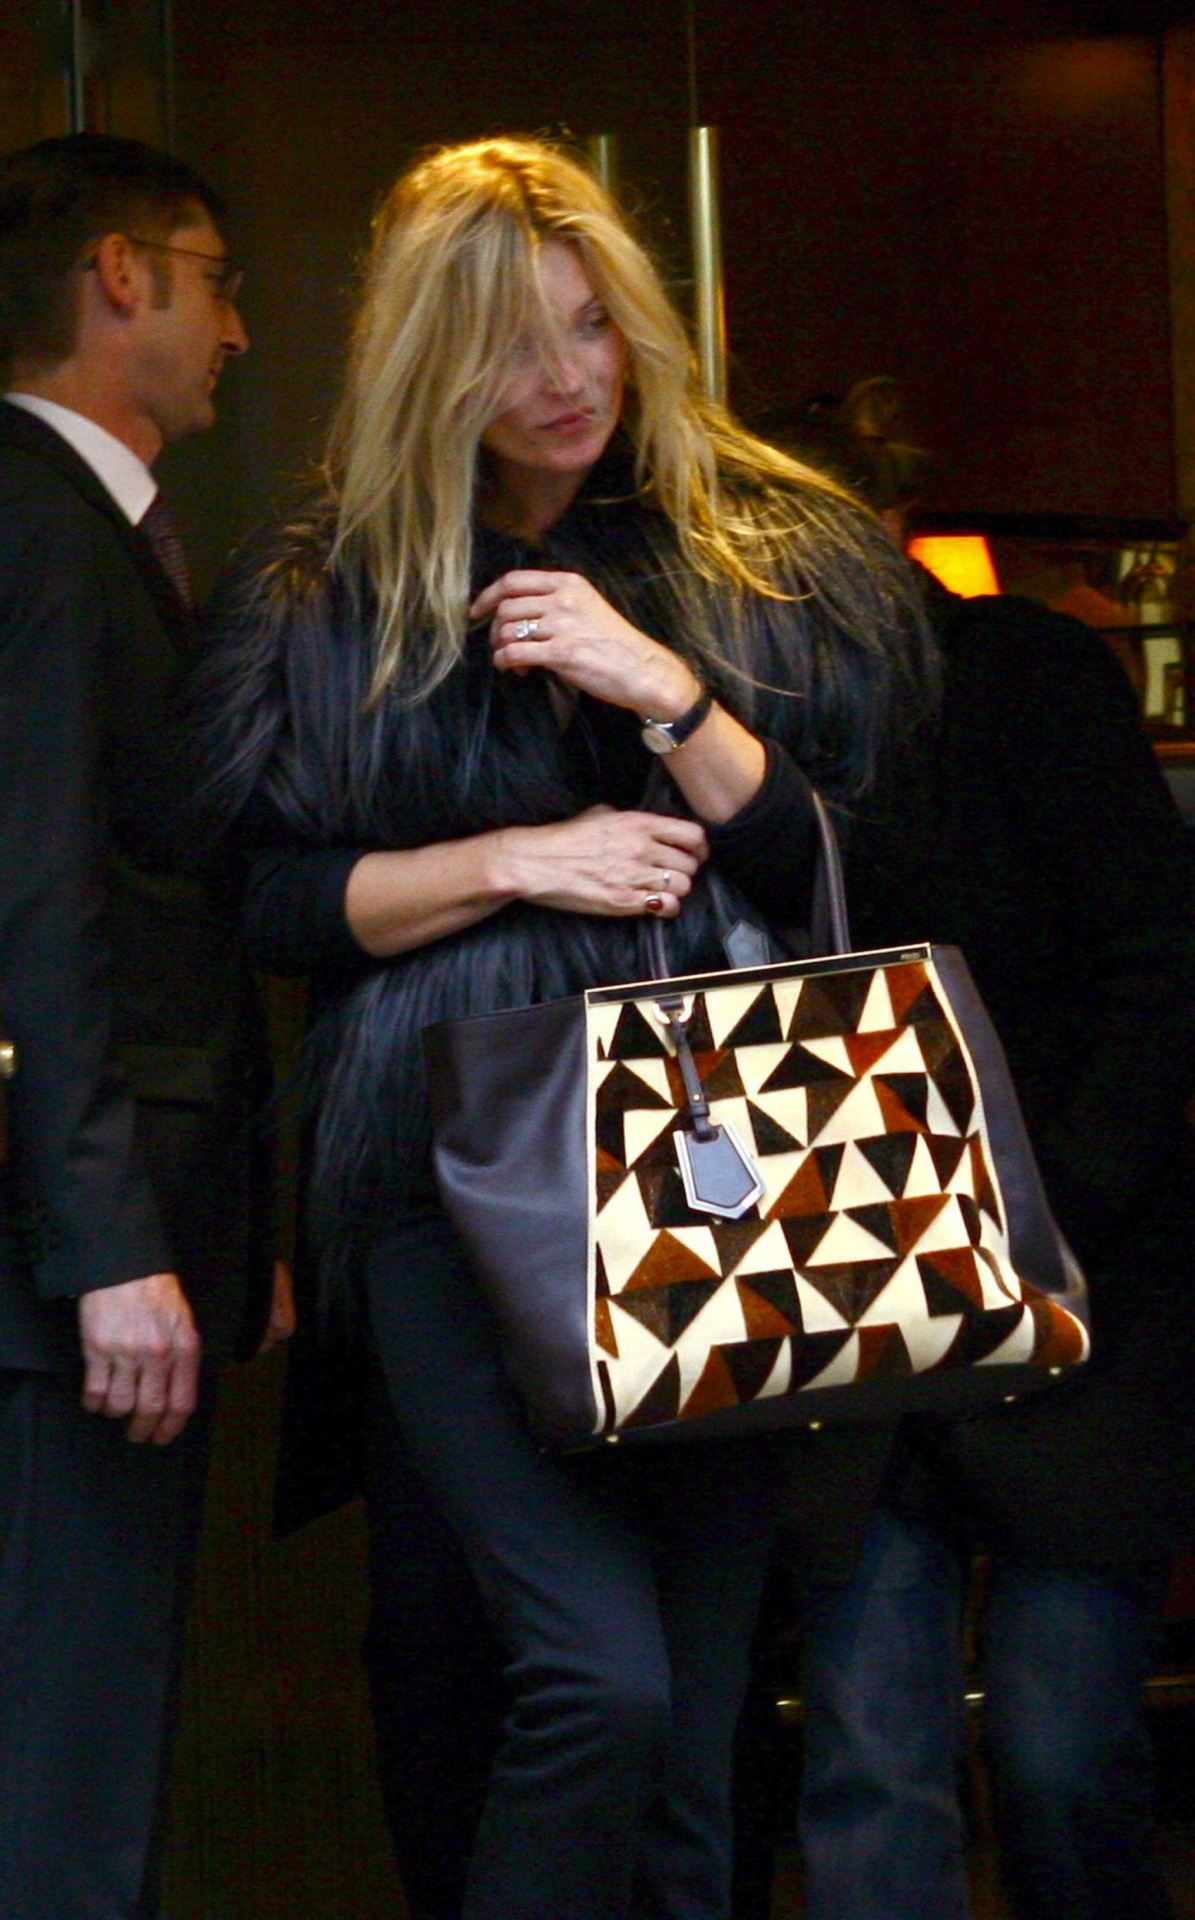 Kate Moss leaving restaurant Maison du Caviar in Paris on the 8th of May 2012.